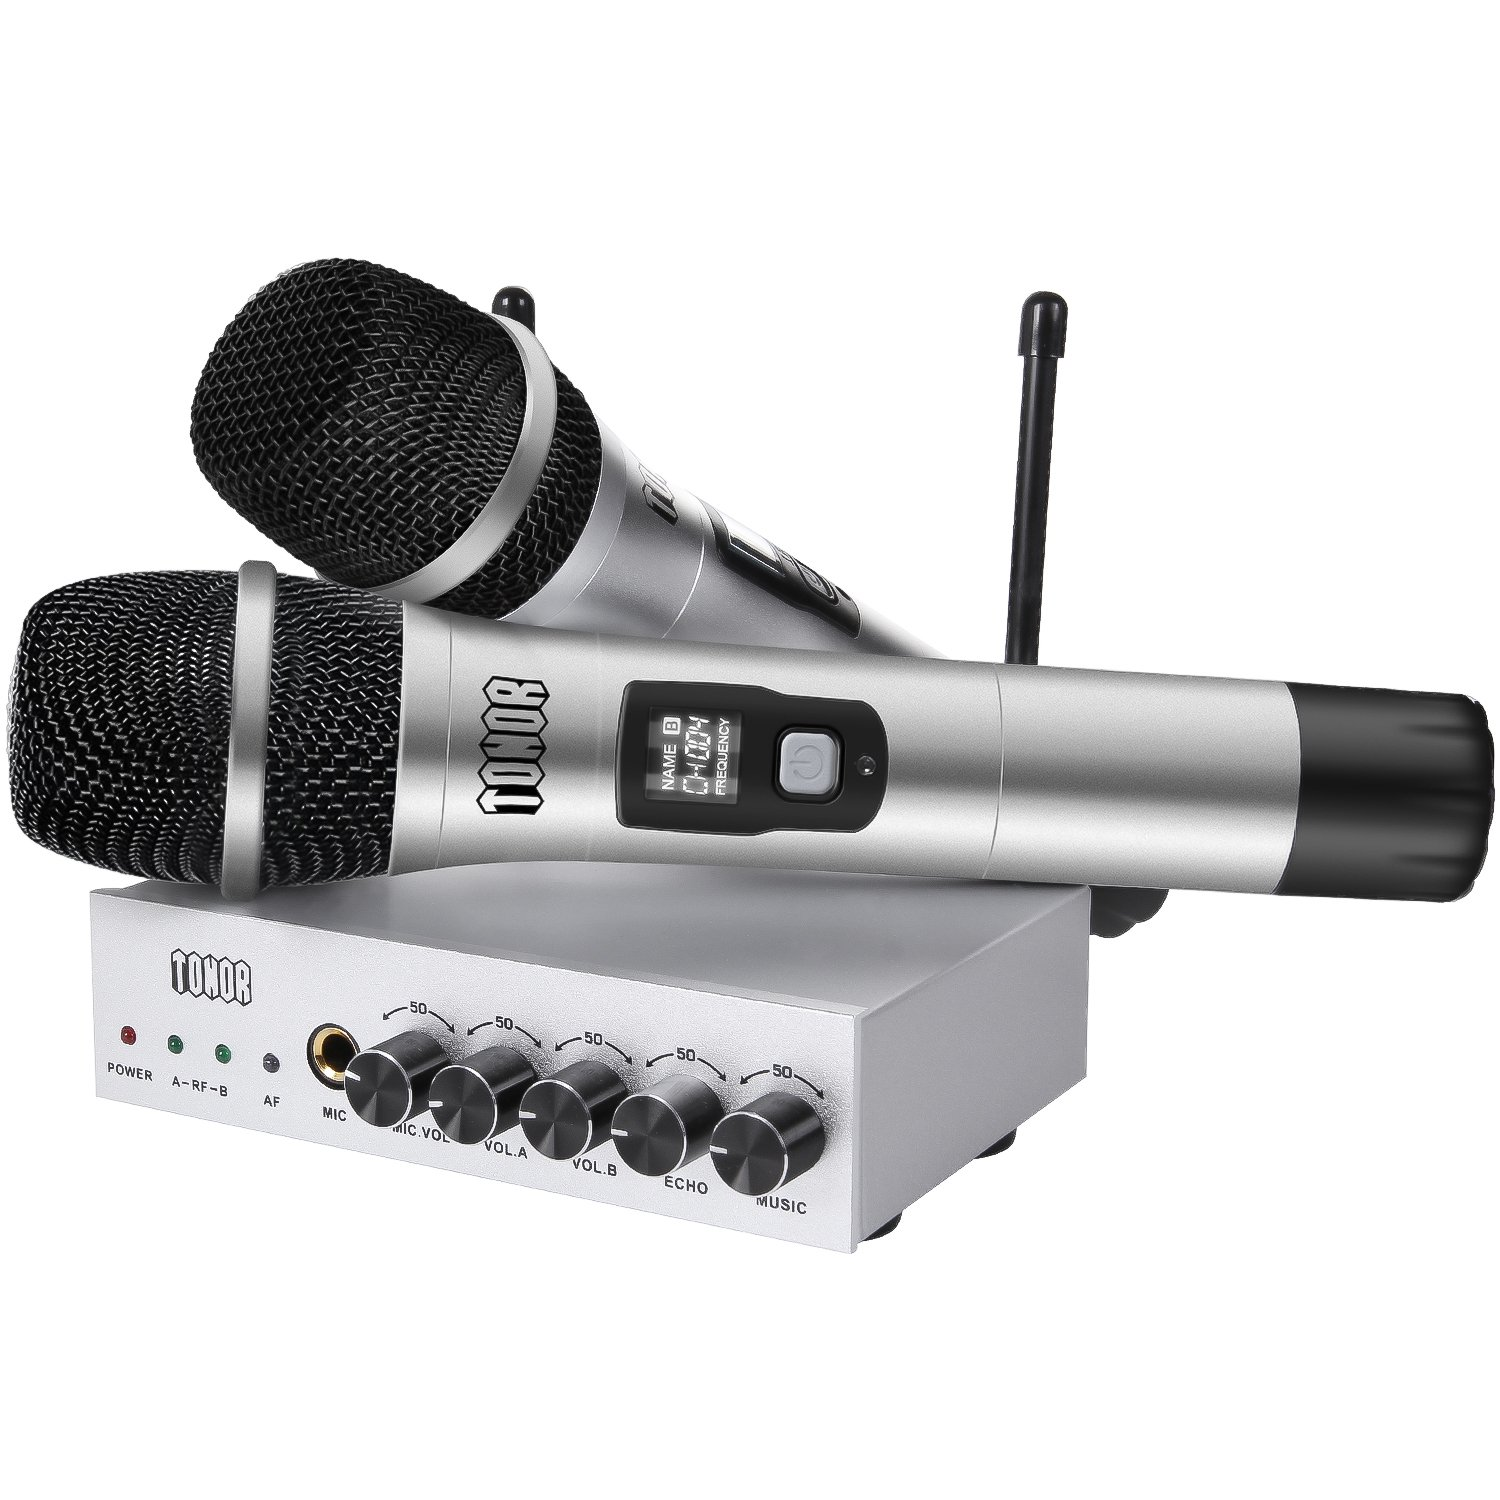 TONOR UHF Wireless Microphone System with Bluetooth Receiver, Metal Cordless Mic Kit, Connect to Amplifier or Speaker for Karaoke, Church, Weddings, Outdoor Activity, Conference, Silver, 80ft